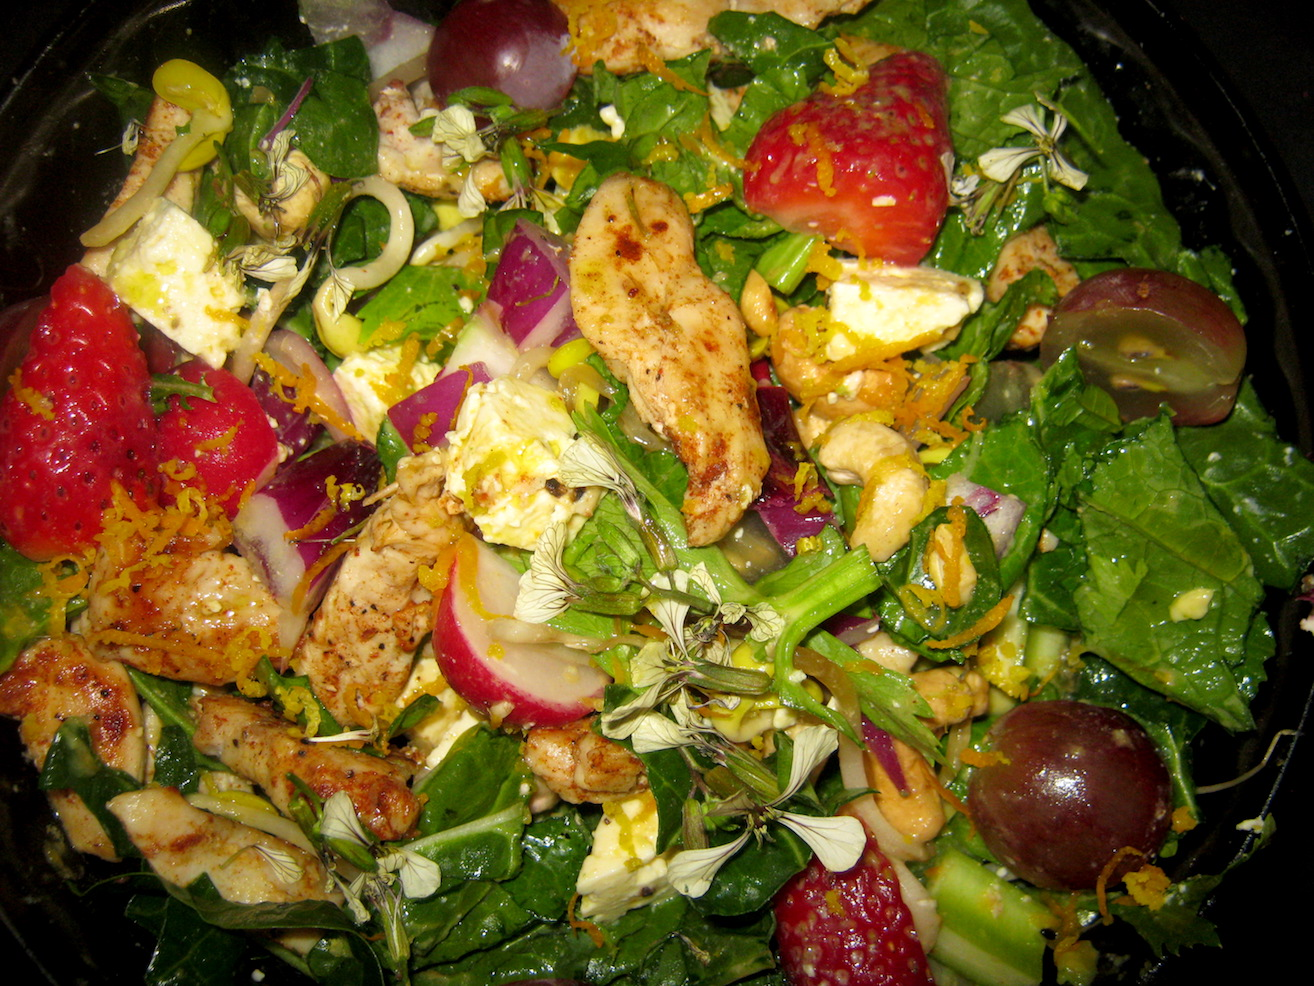 Colorful chicken salad